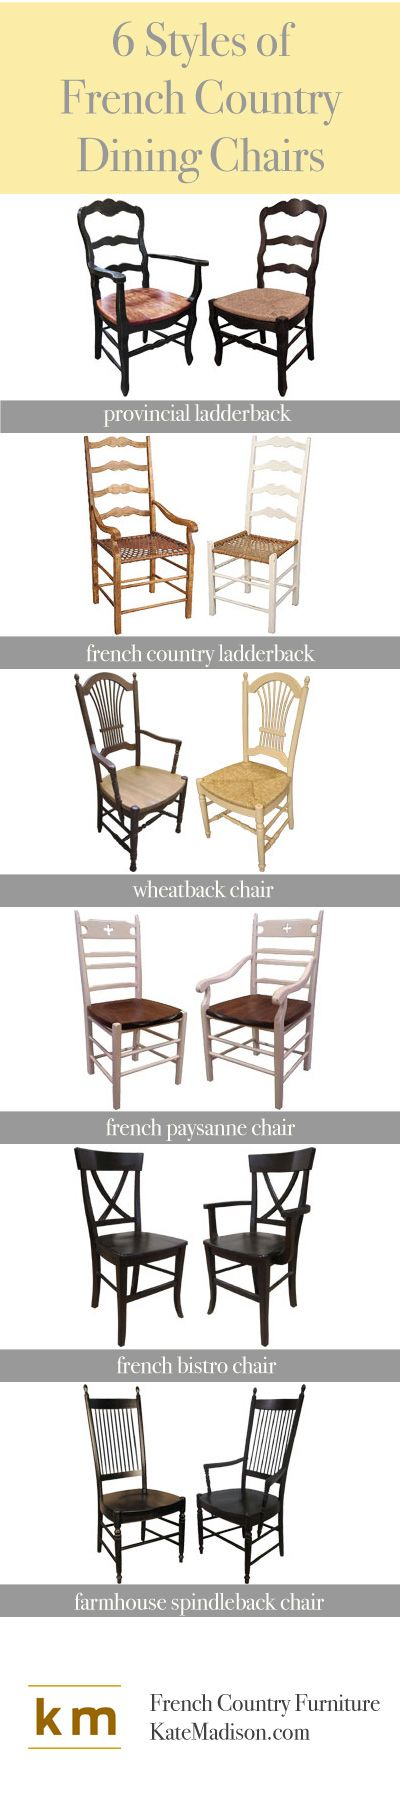 Looking for the perfect French-Style dining room chairs? KateMadison.com has a complete collection of French Country Dining Chairs available with many seat and color options.